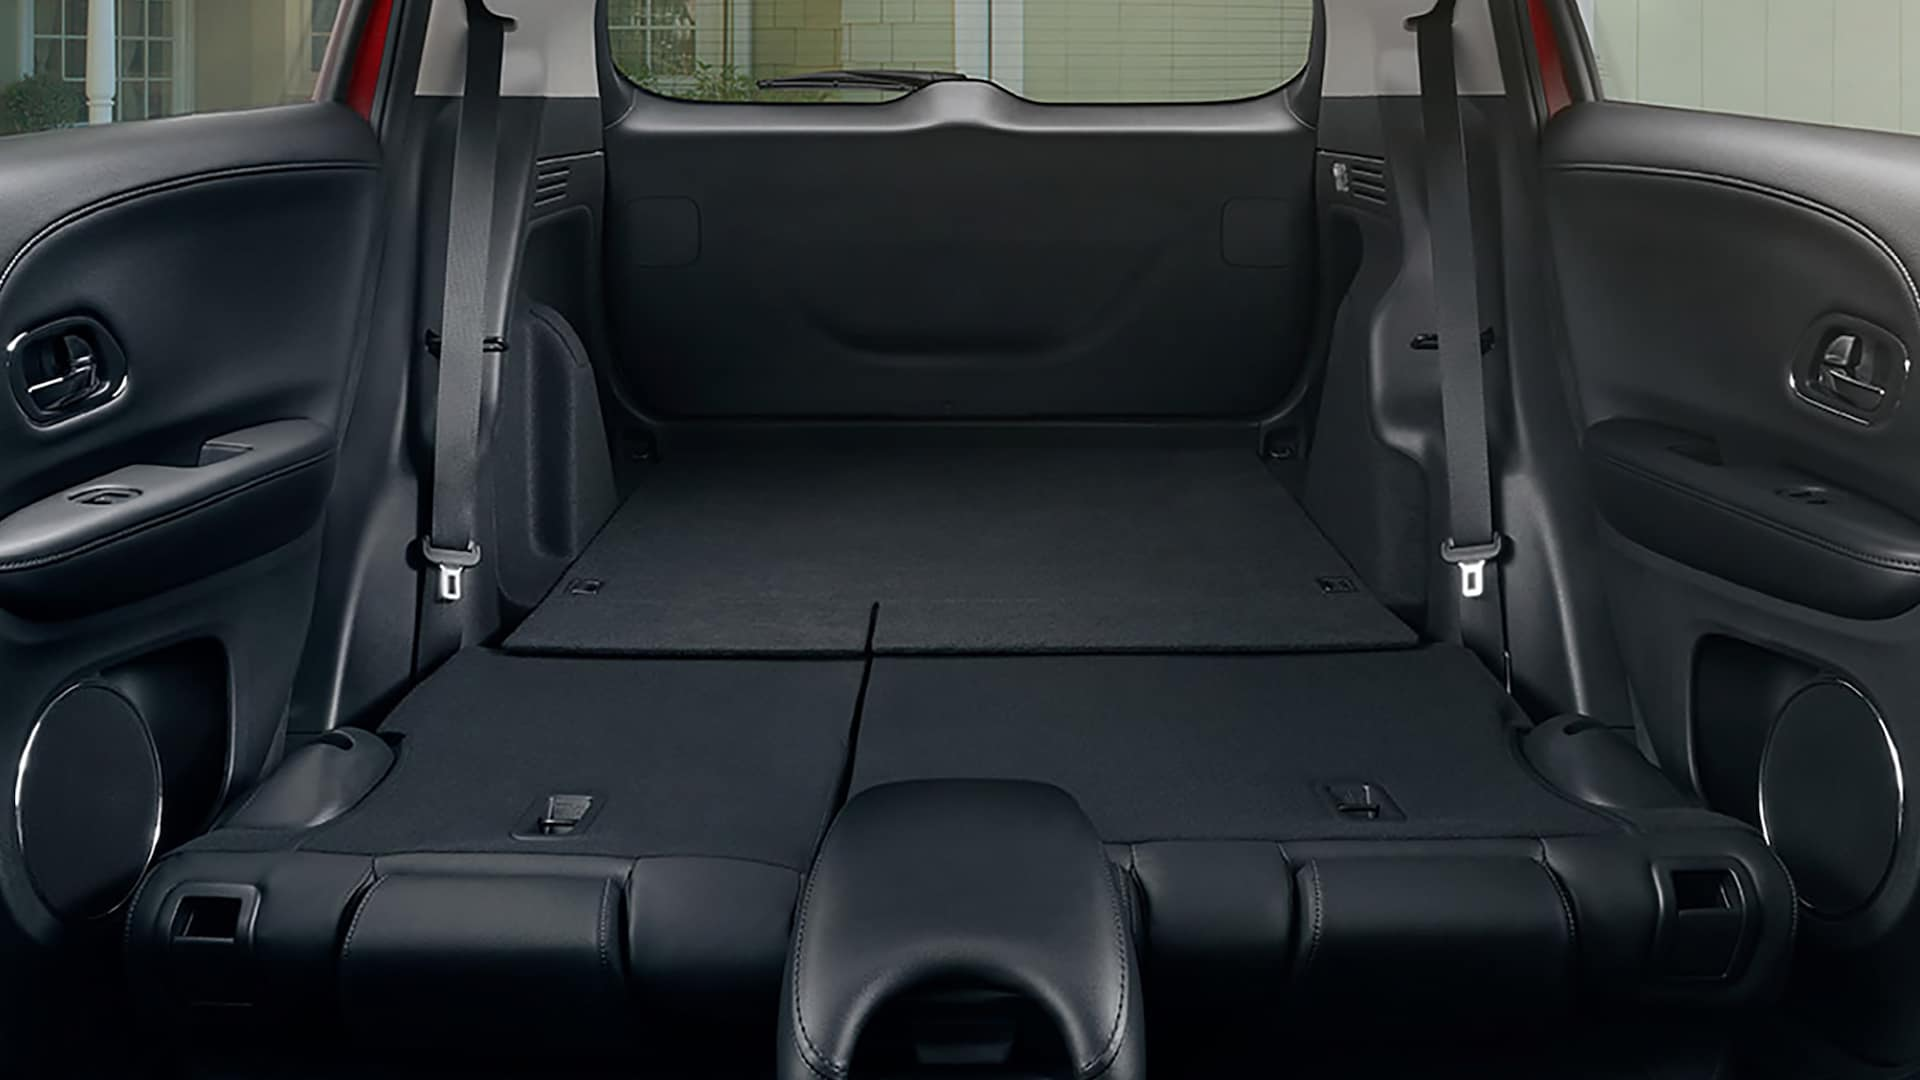 Interior view of the 2019 Honda HR-V Touring in Black Leather and all rear seats folded down.